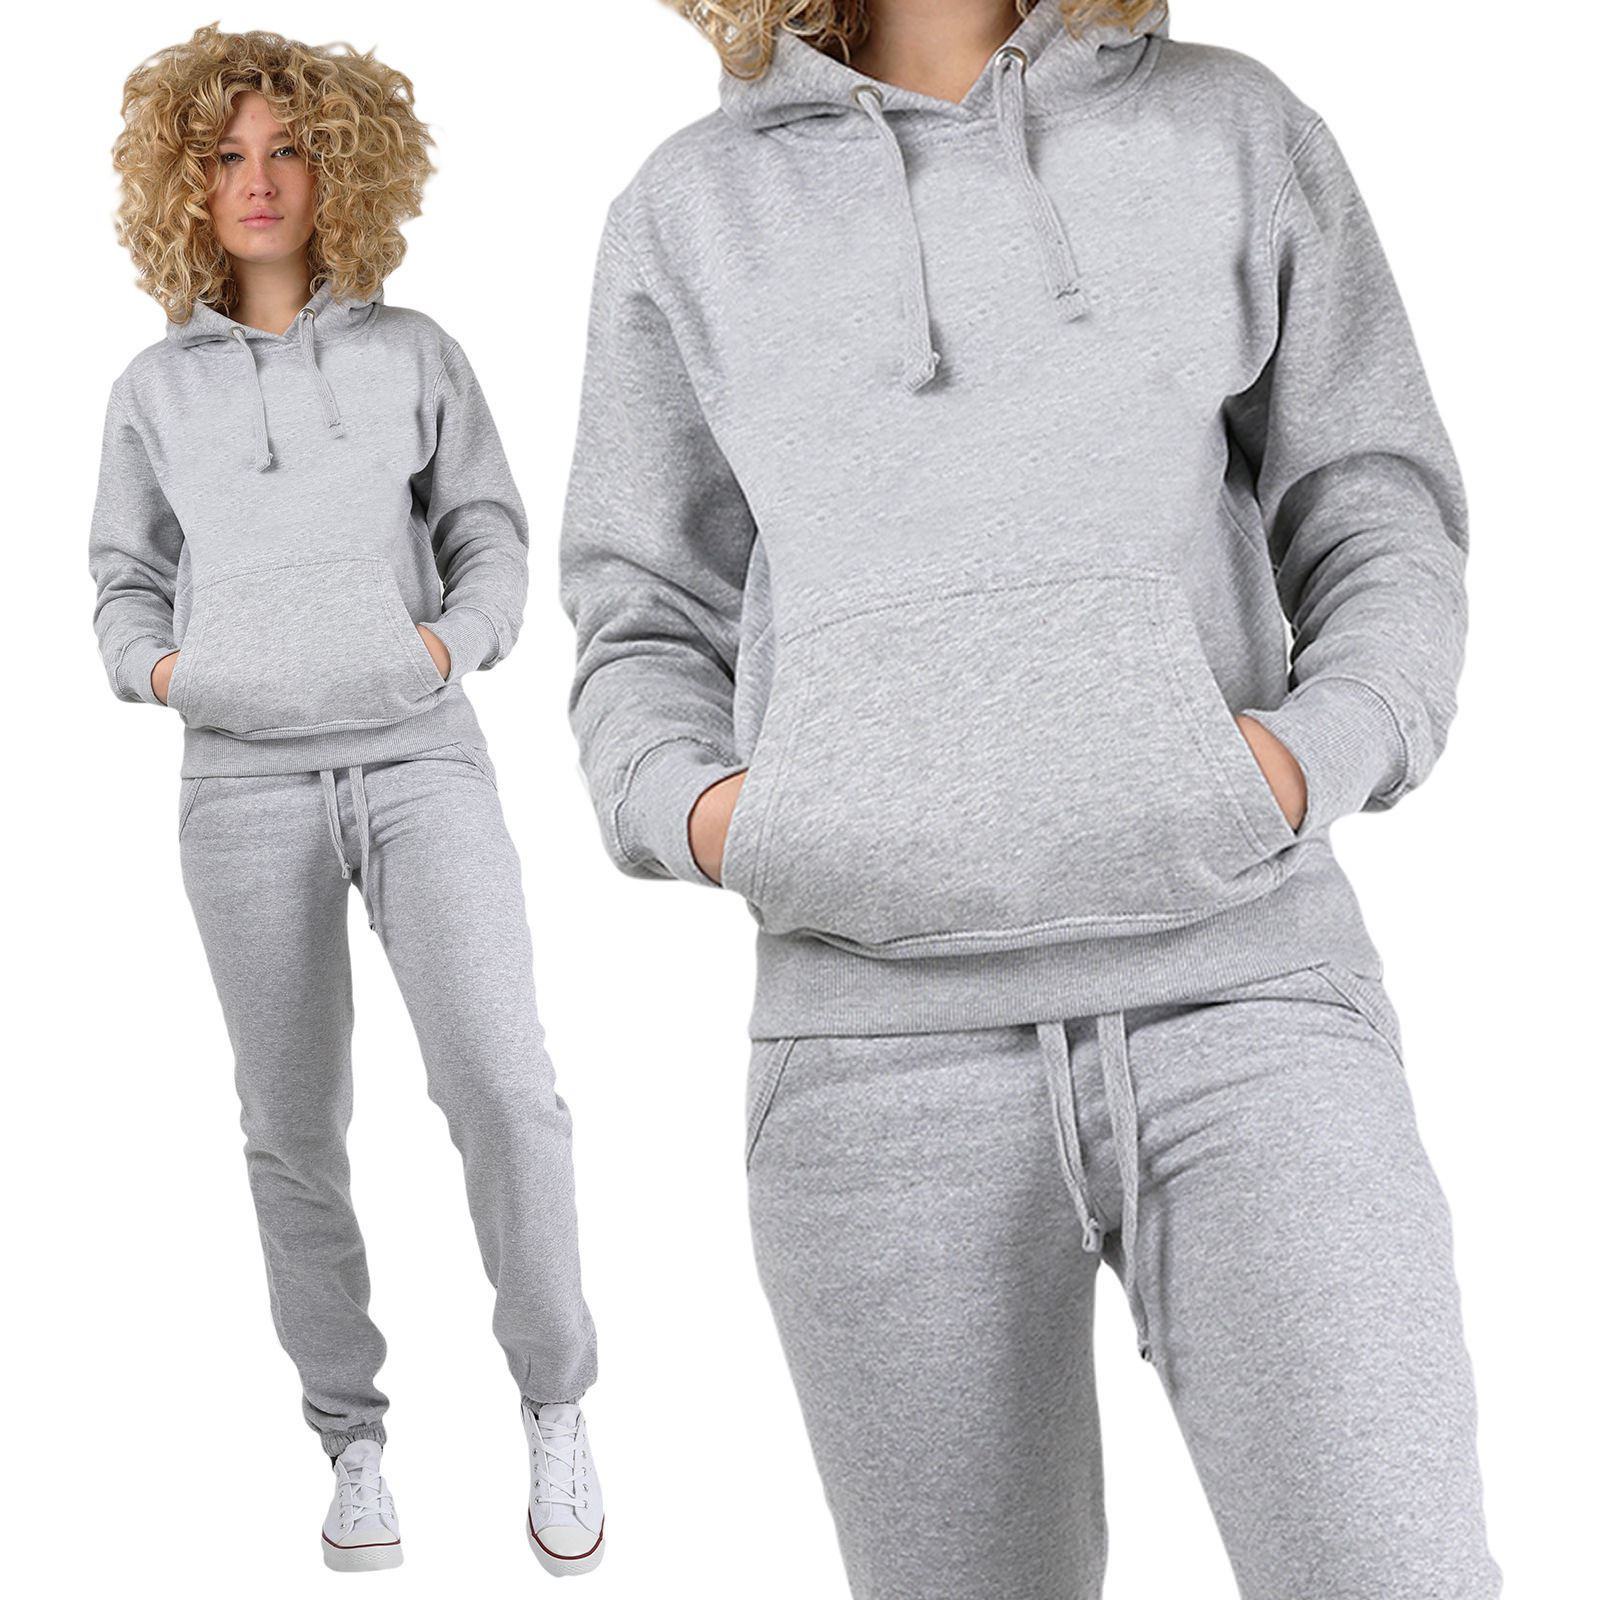 Update your loungewear stash with these tracksuits for women that range from classic to super luxe. And you thought you'd seen the last of Juicy. 😏 9 Ways to Bring the Tracksuit Back Into Your Life. And you thought you'd seen the last of Juicy. 😏.